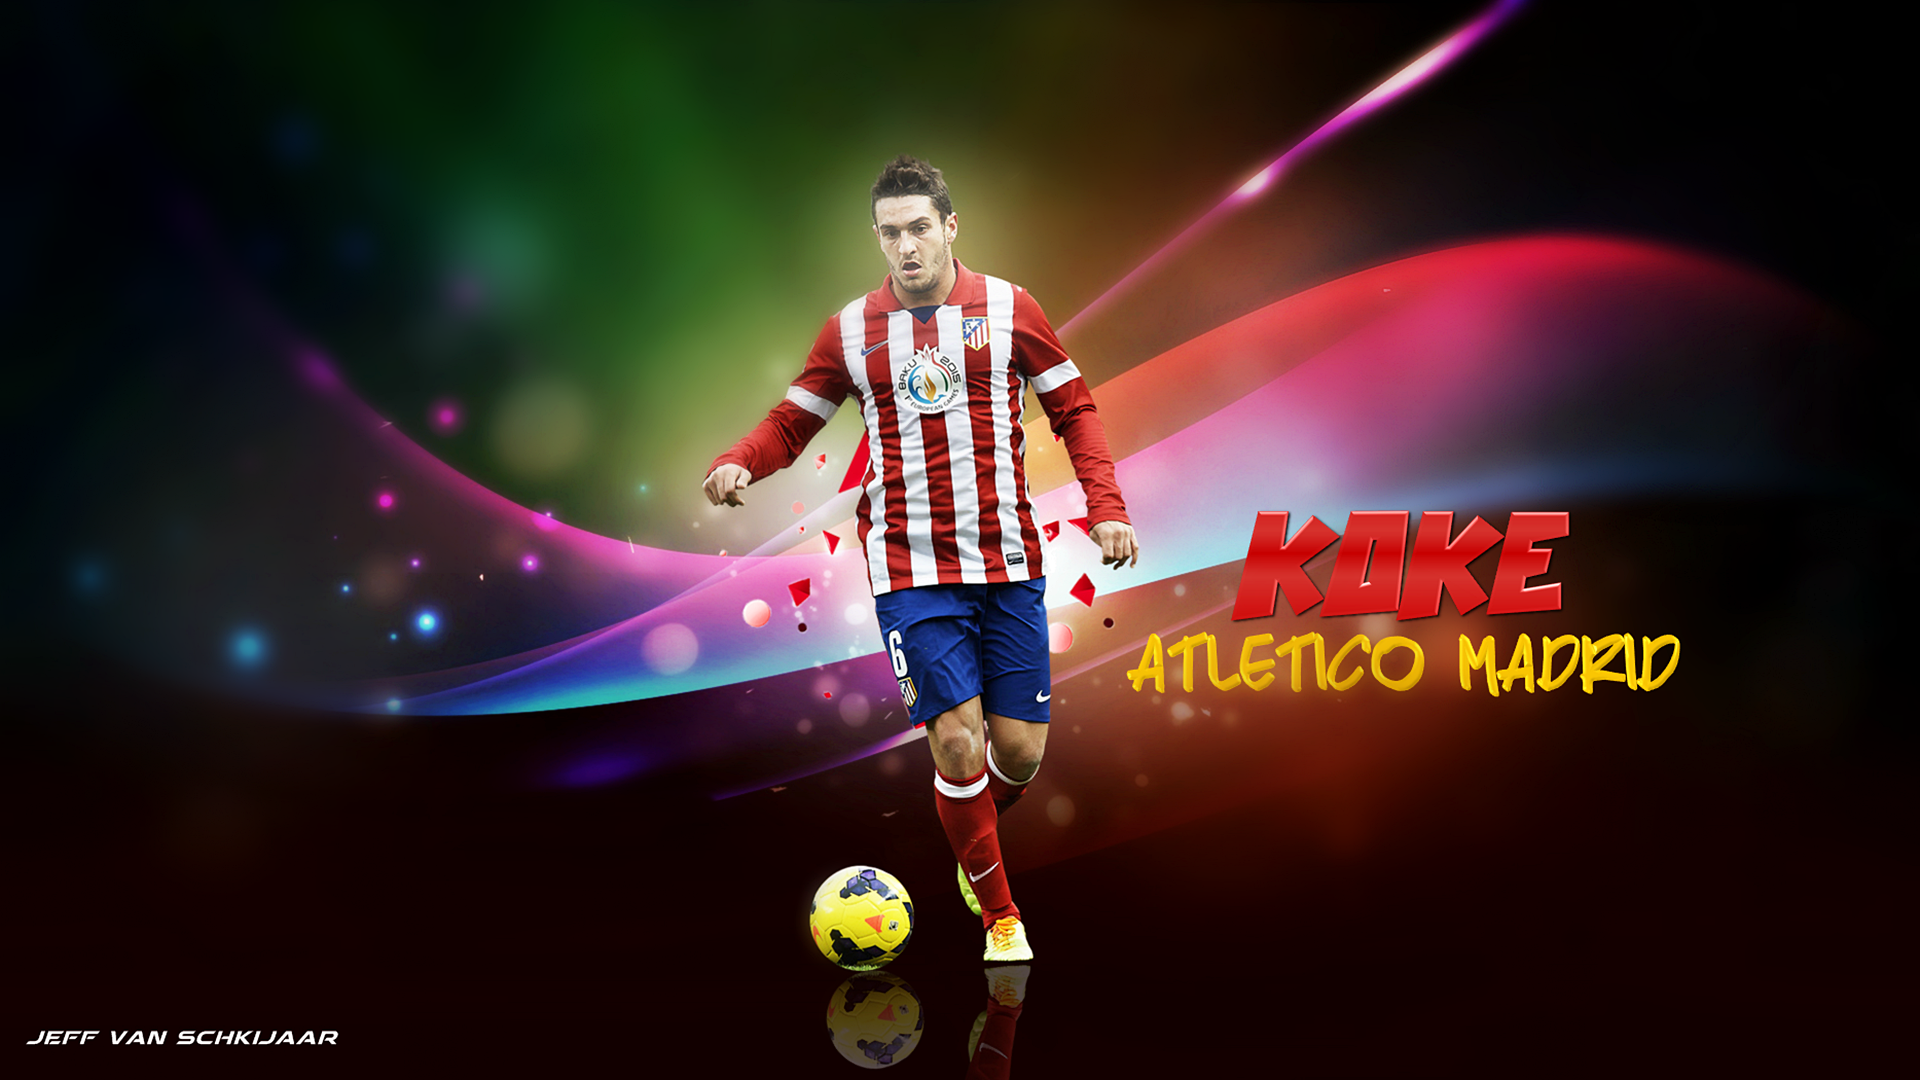 Image for atletico madrid wallpaper 2015 1920x1080